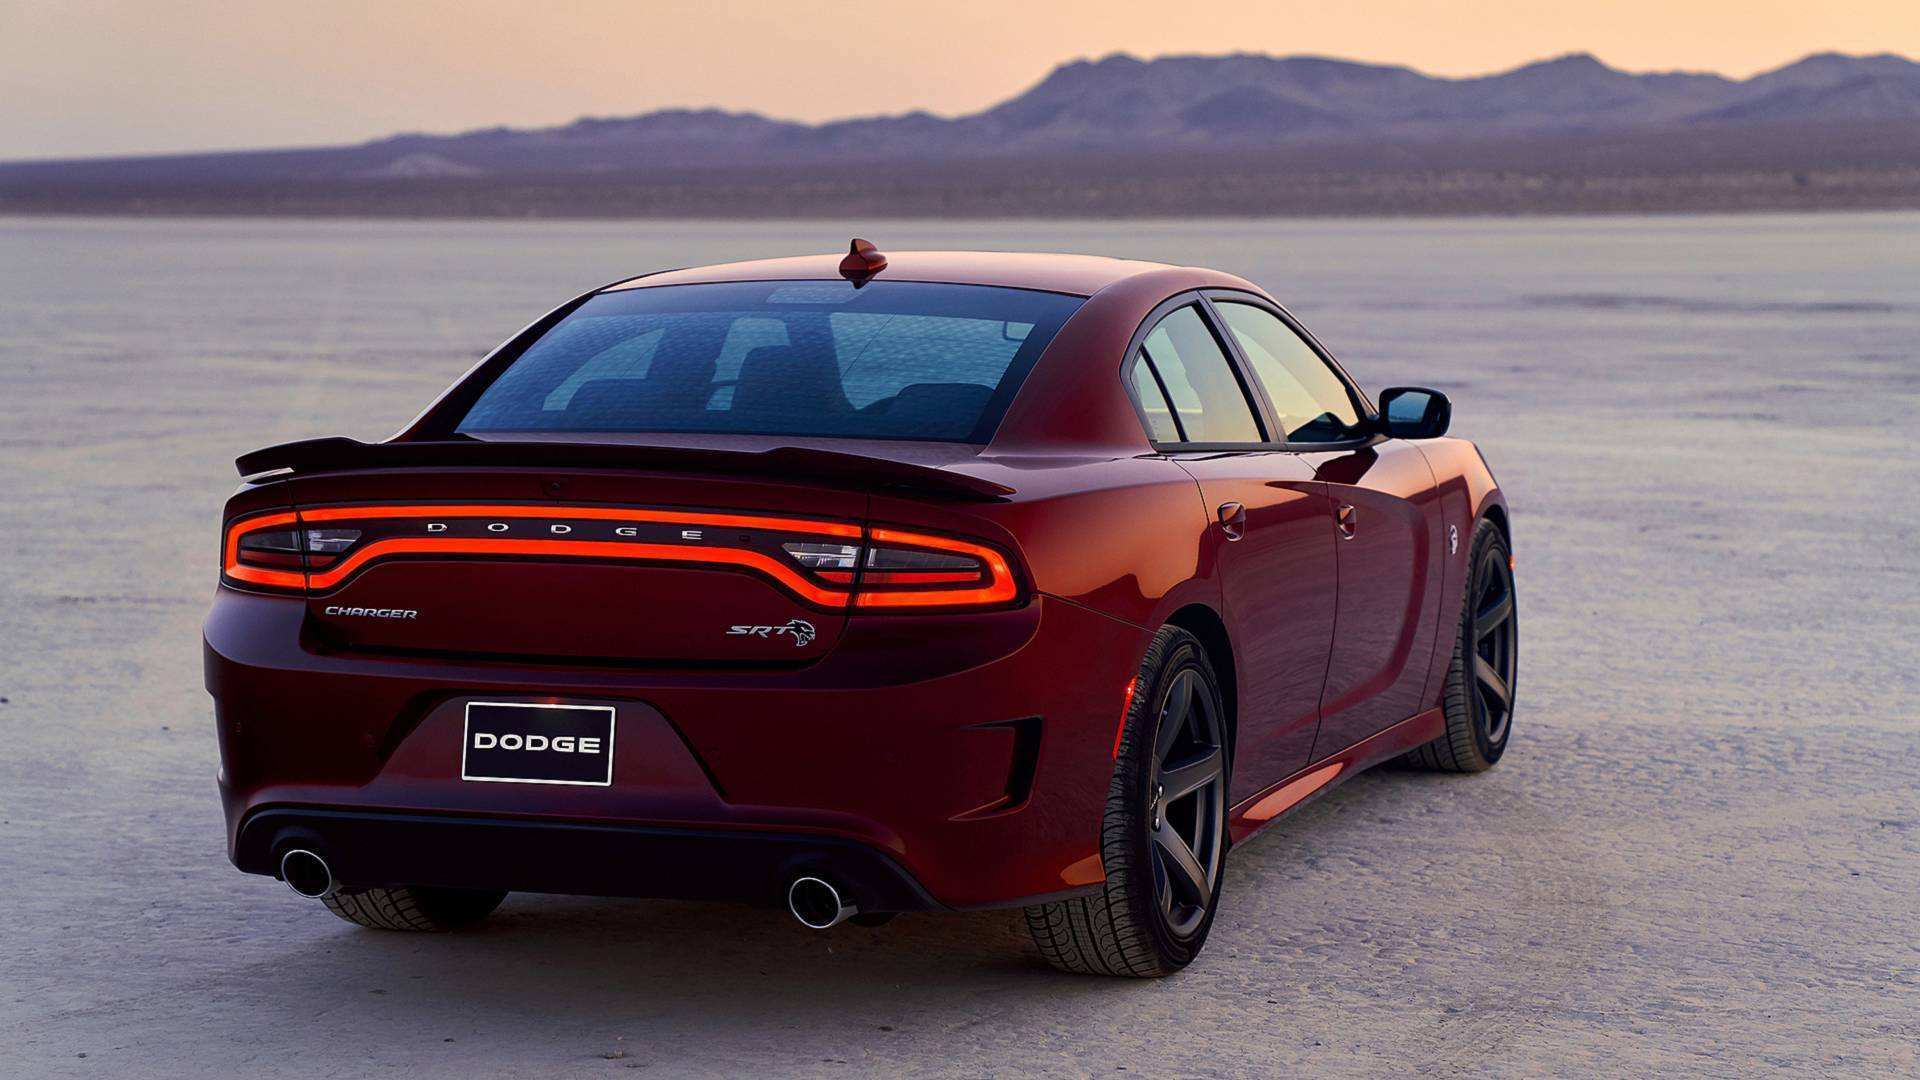 90 The 2019 Dodge Challenger Hellcat Spy Shoot